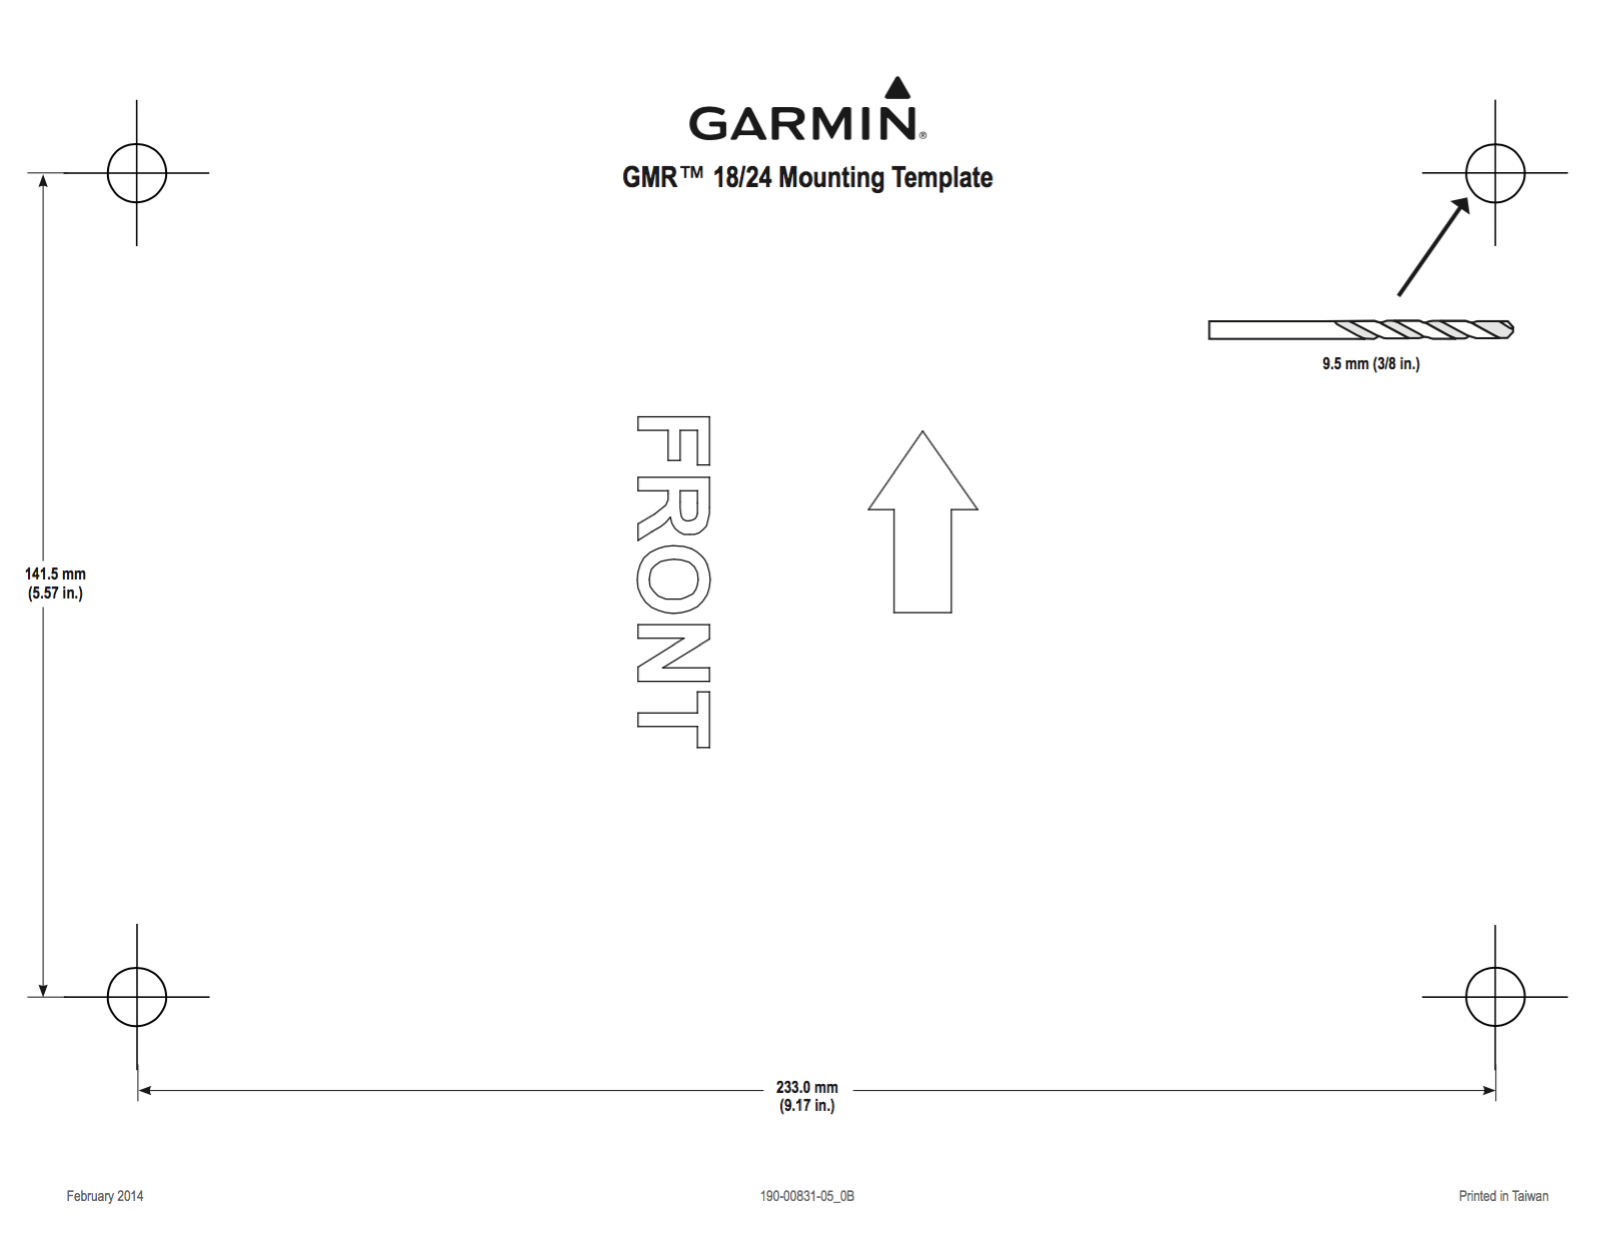 gmr 18 hd radar mounting template